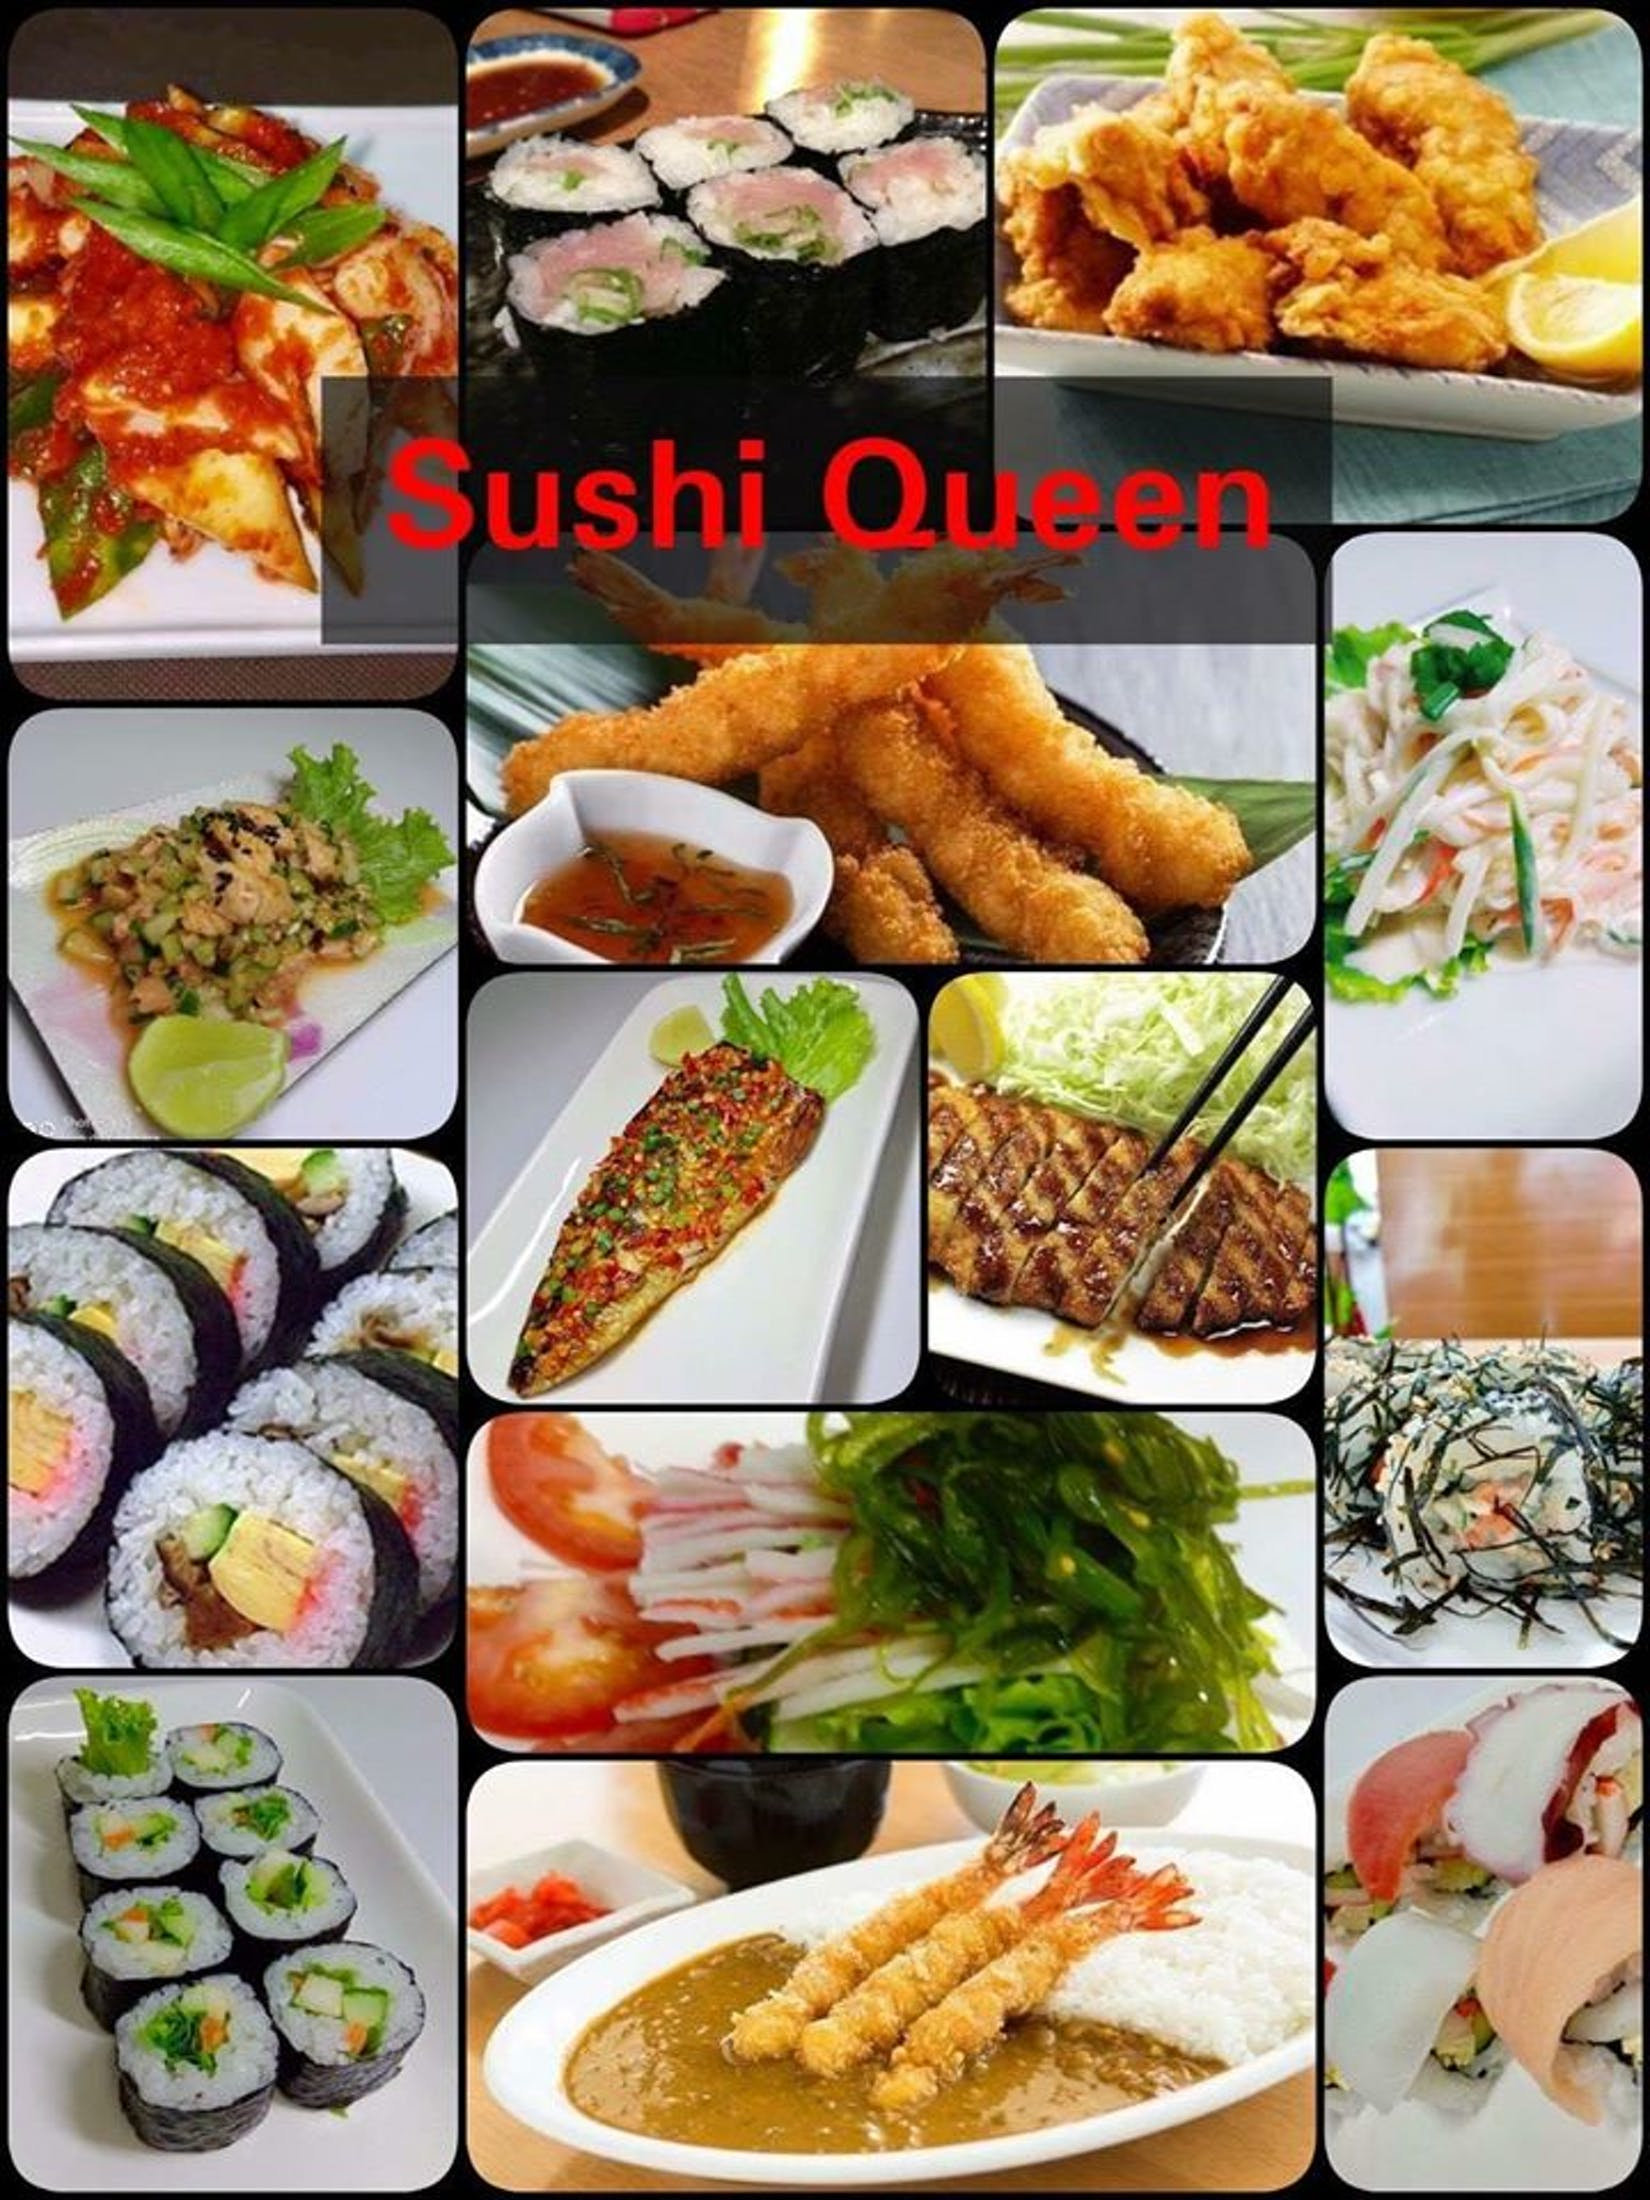 Sushi Queen Japanese Restaurant | yathar